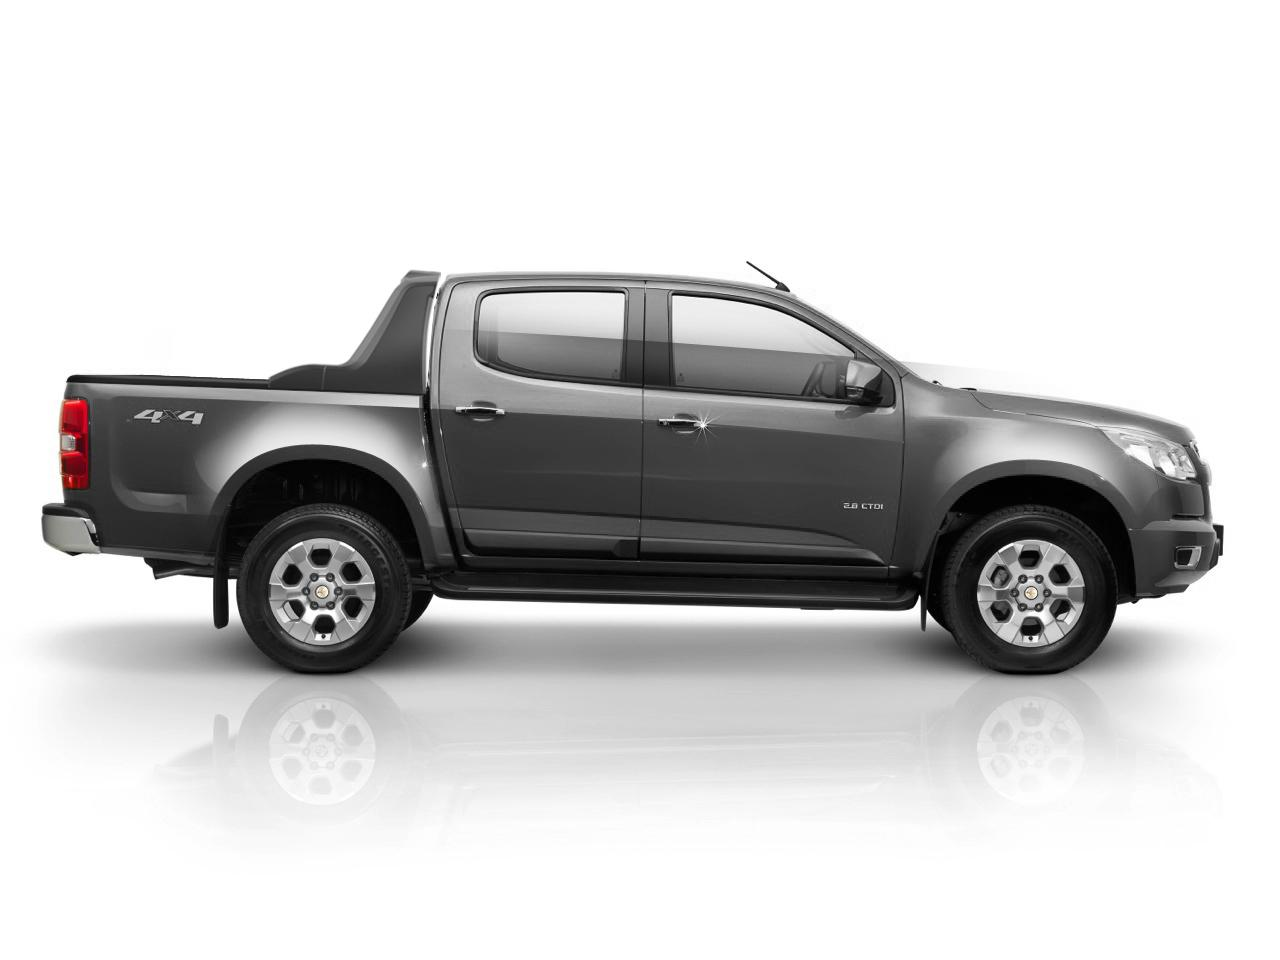 What Will a 2020 Chevy Colorado Look Like? - Chevy ...